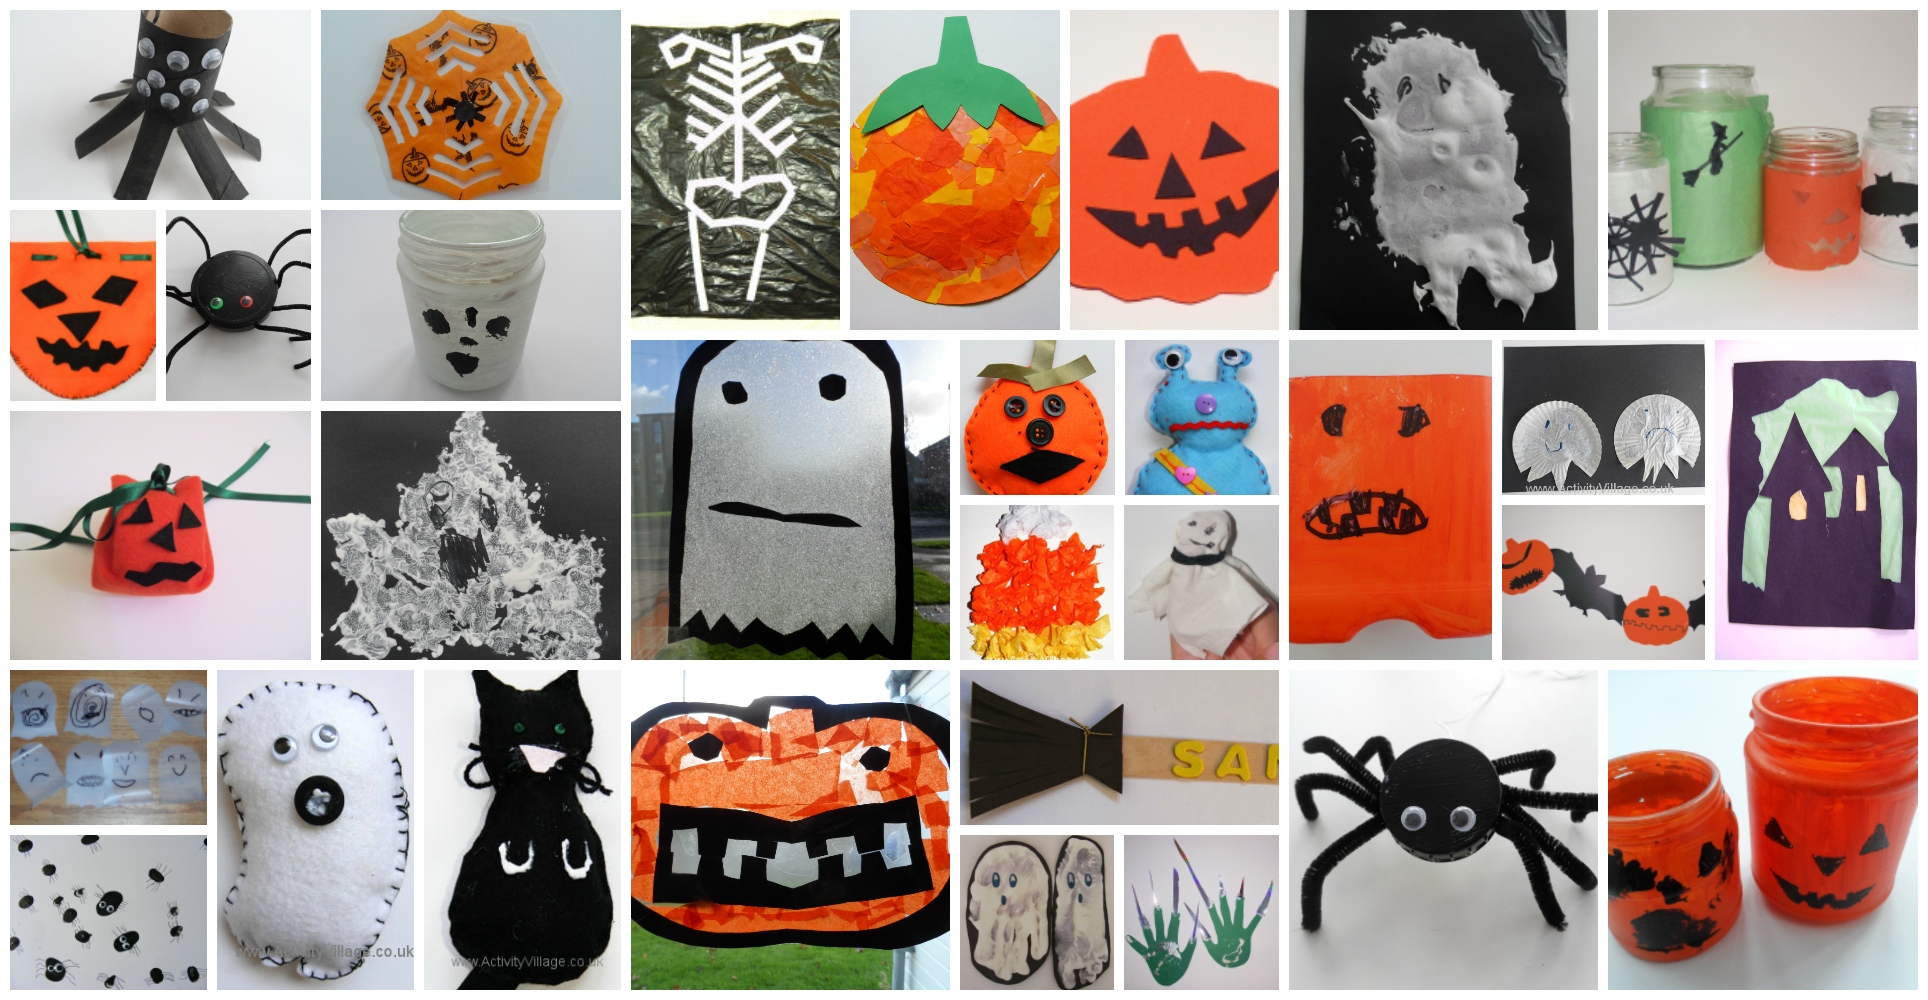 Just A Small Selection Of Our Halloween Crafts